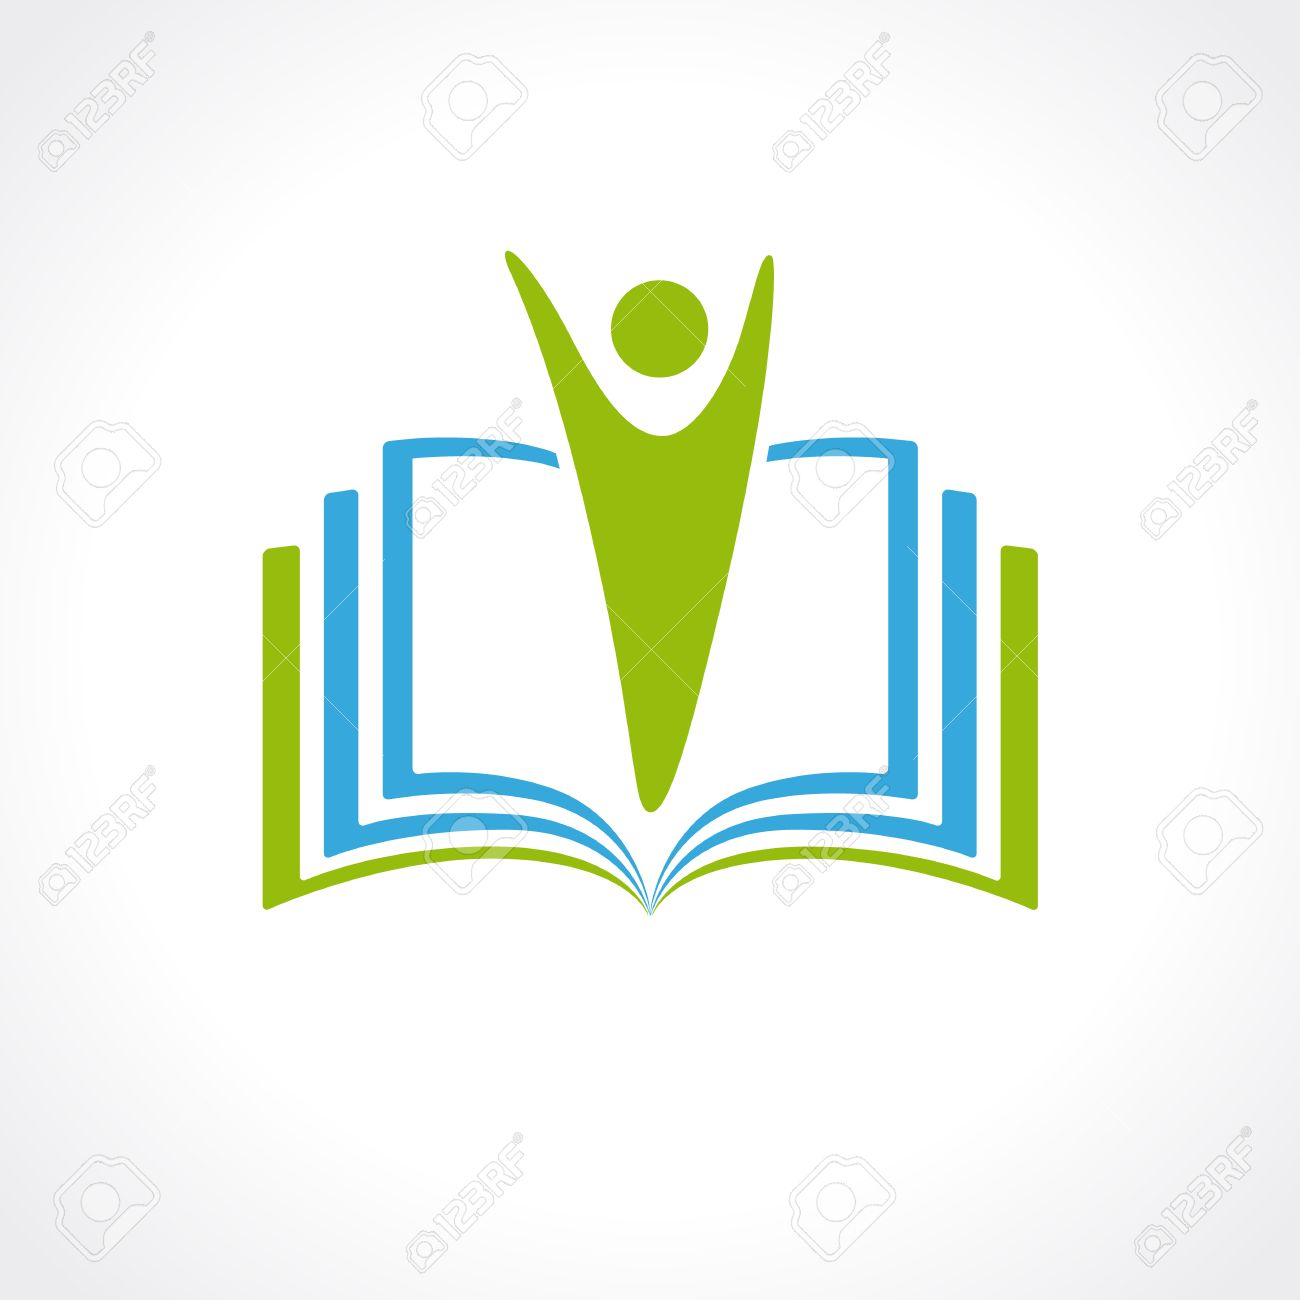 education vector logo template open book and human education rh 123rf com open book logo png open book logo png